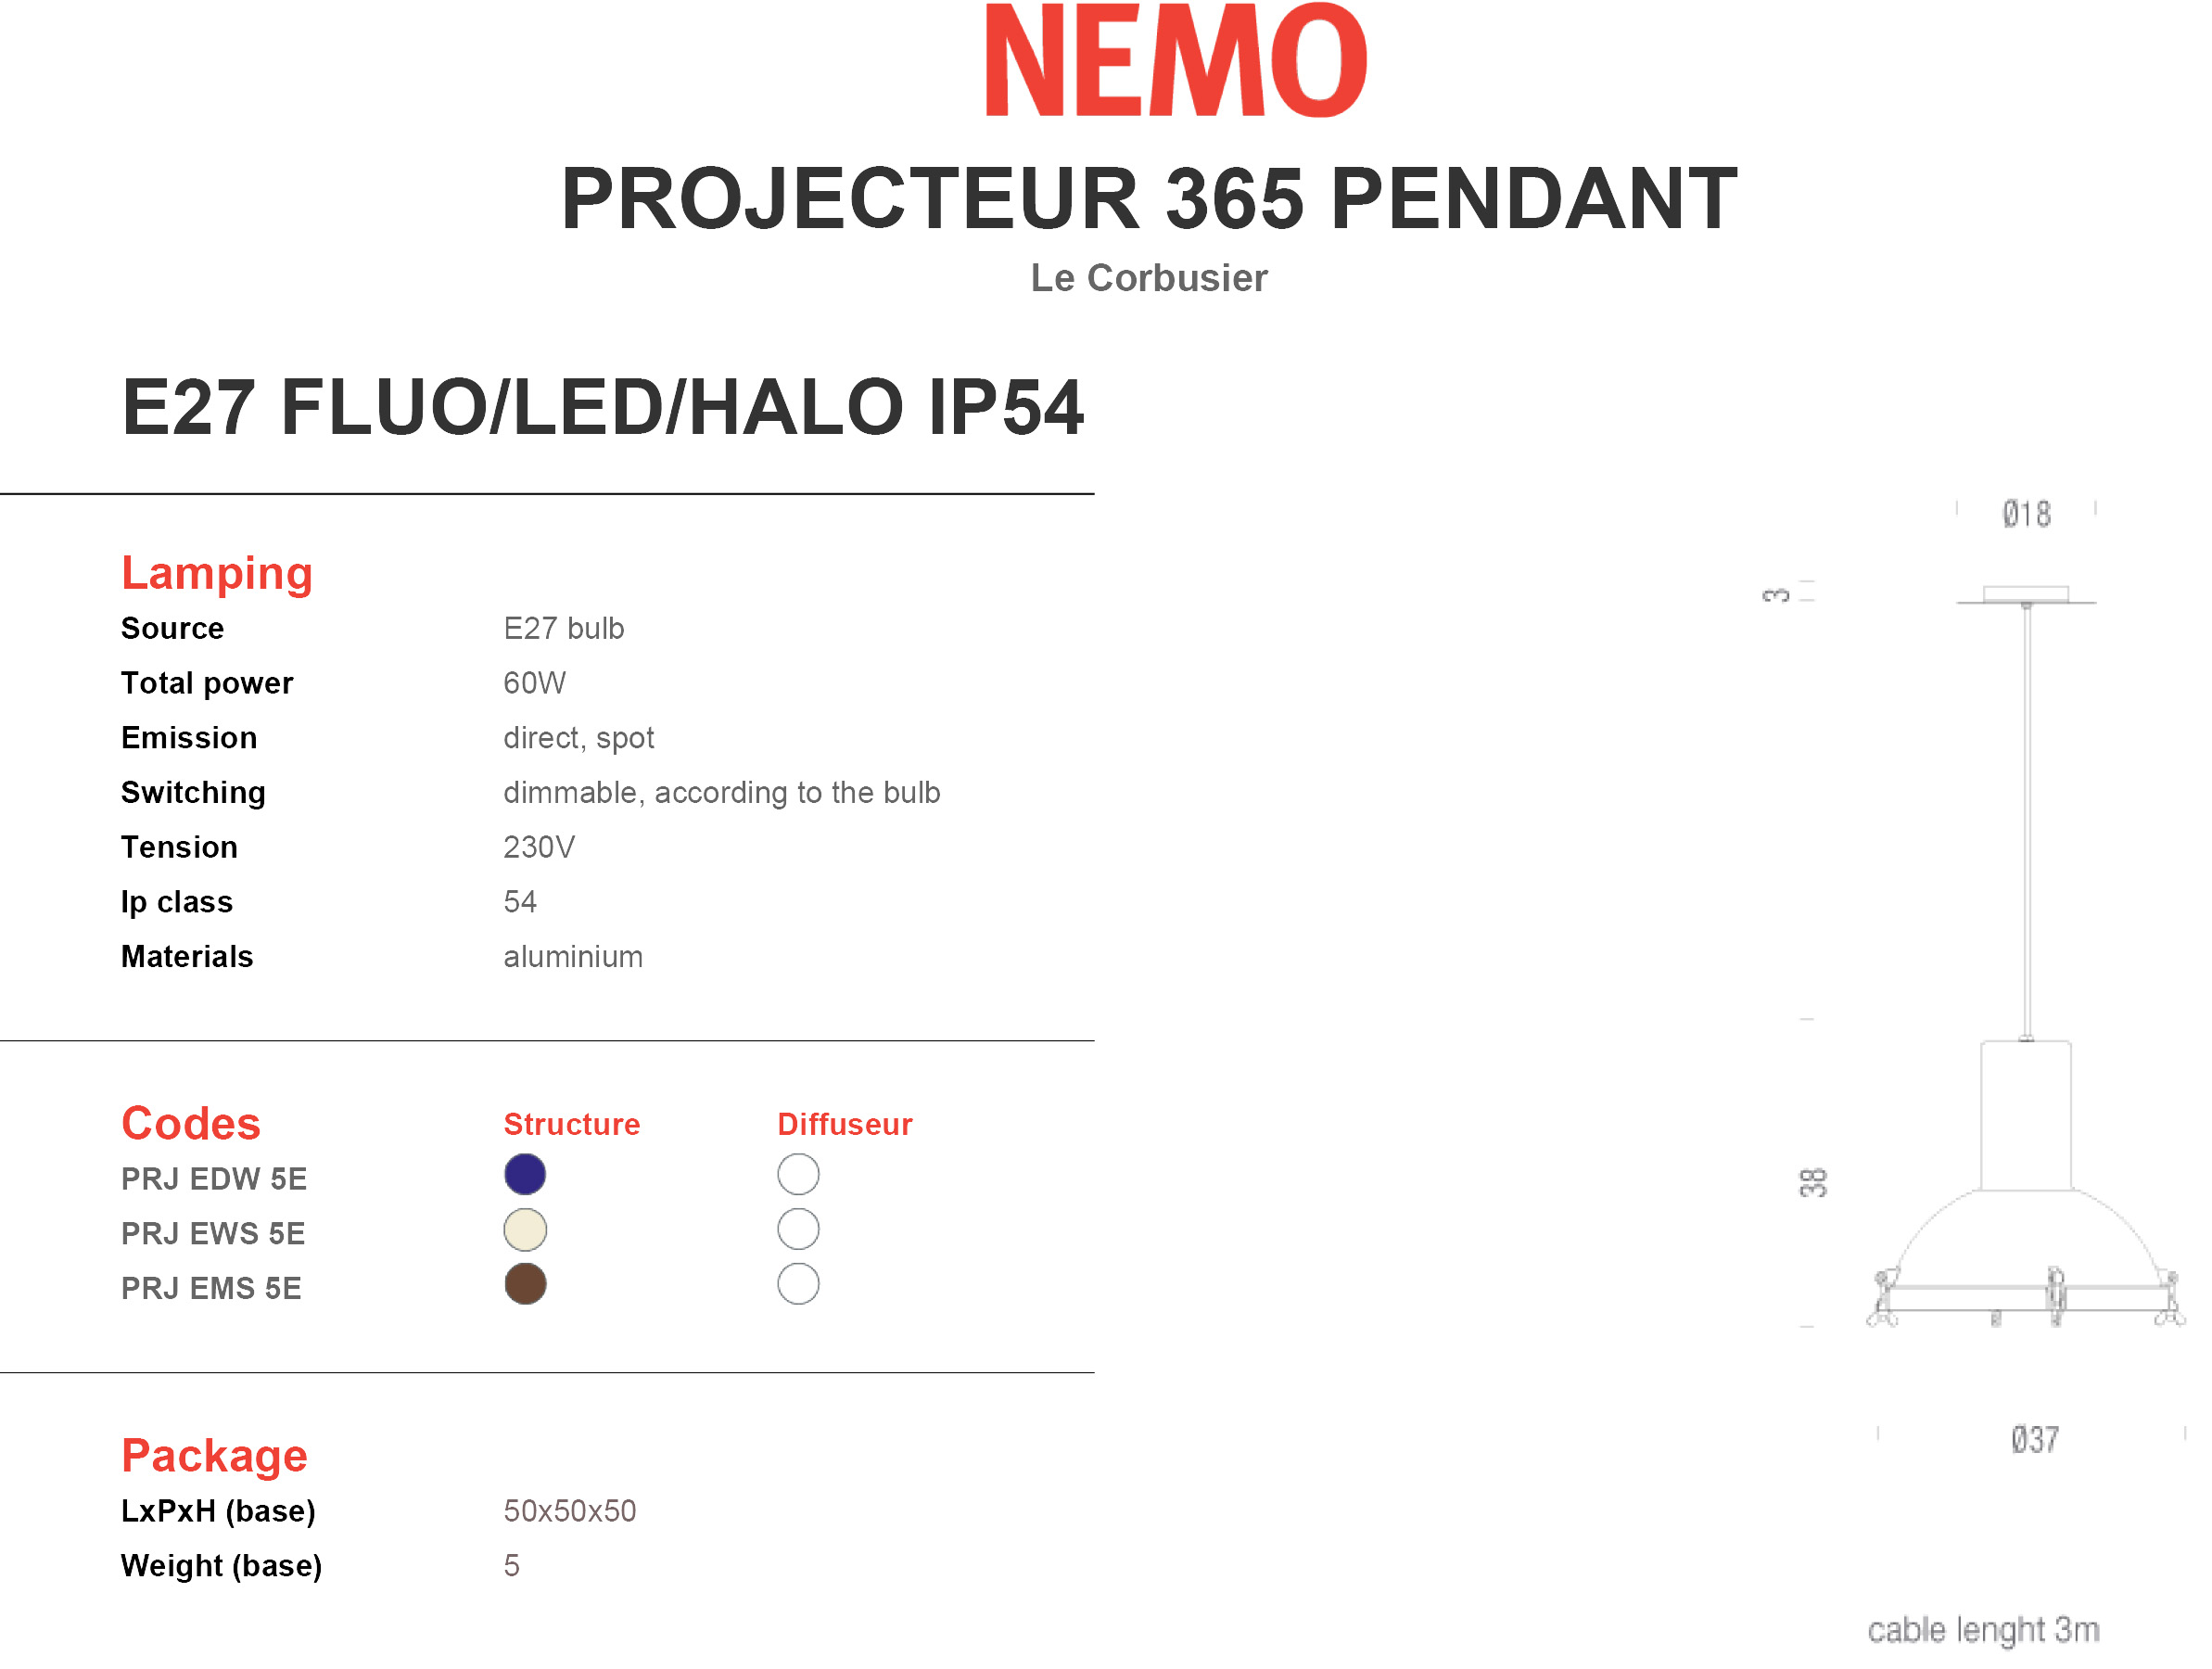 Nemo Projecteur 365 Pendant IP54 Tech